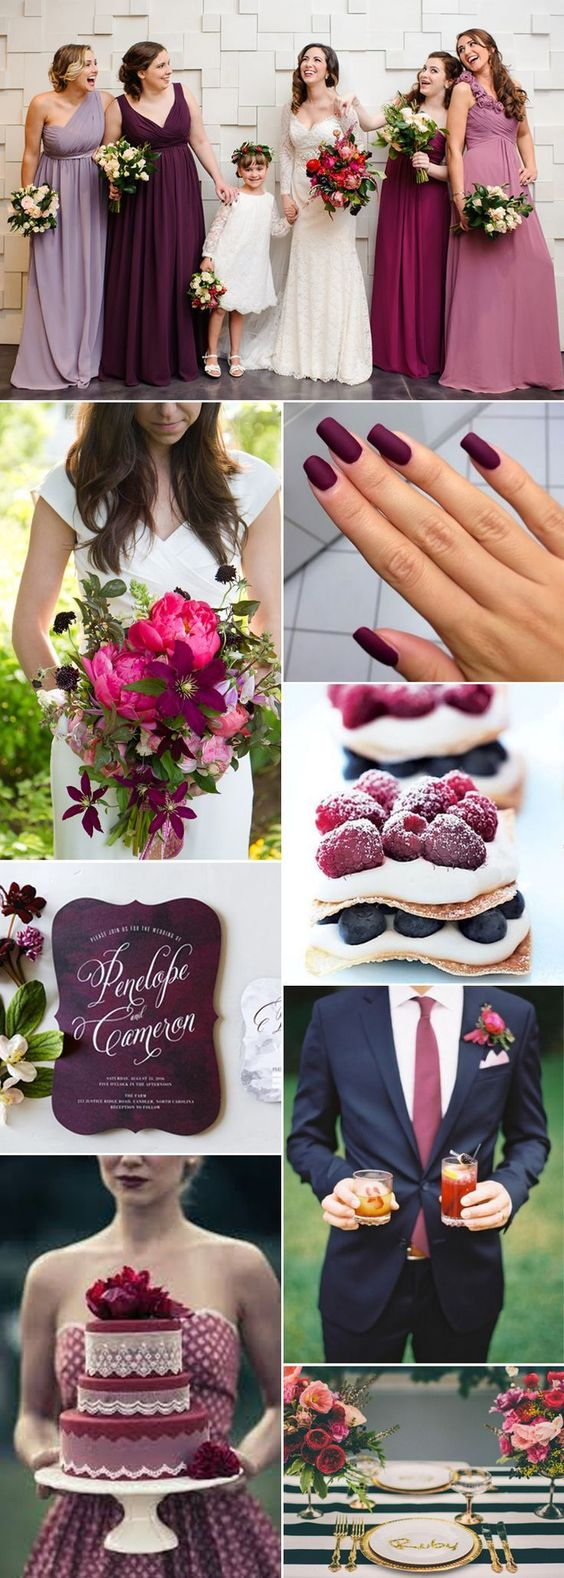 smitten-2 Trend Forecasting: Top 15 Expected Wedding Color Ideas for 2019